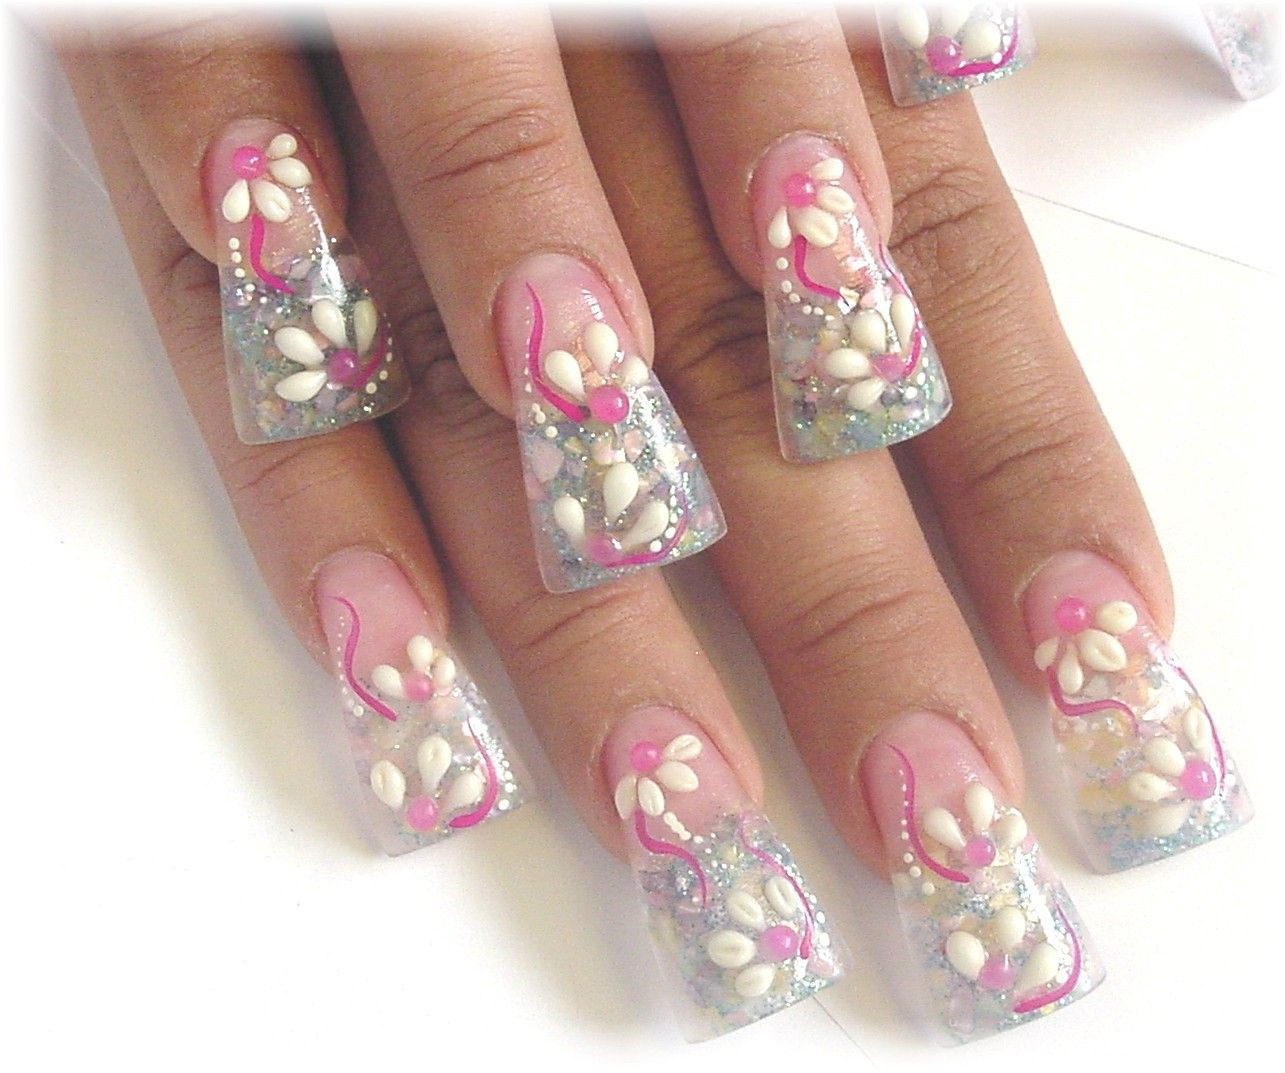 Gel Nail Designs Ideas cute summer gel nails cute sparkly gel nails View Original Image Of Awesome Gel Nail Designs Ideas Mania